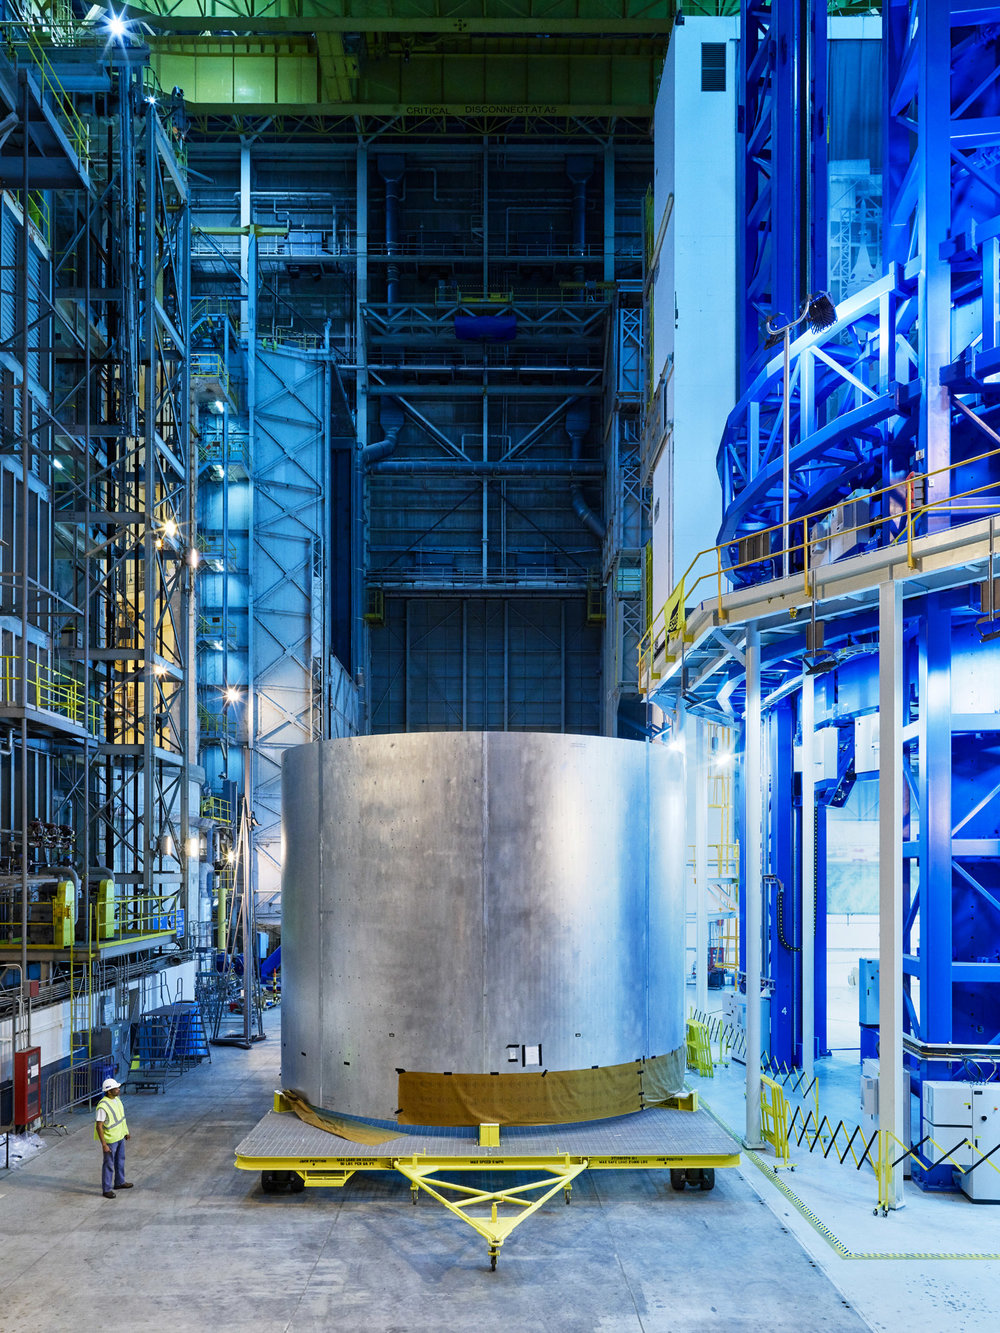 A SLS Rocket Hydrogen Tank, Michoud, New Orleans